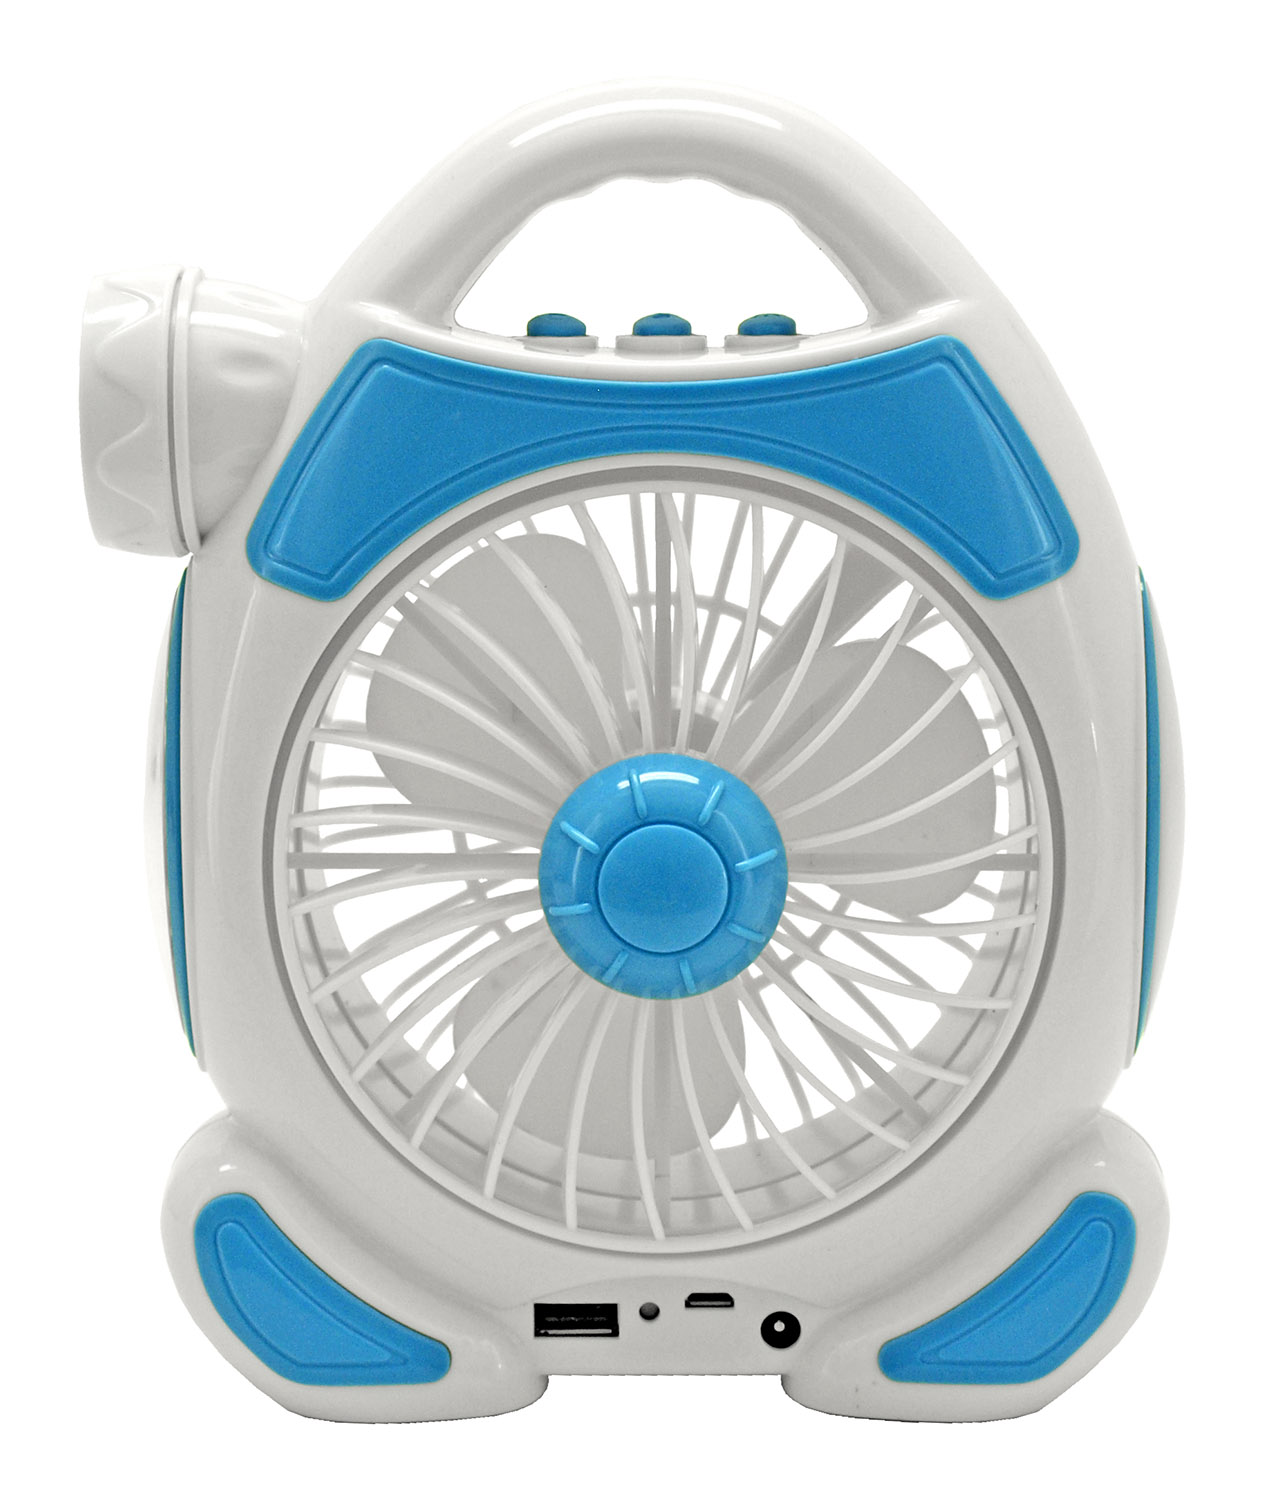 Multifunctional Fan, Lights, and USB Charger - Assorted Colors